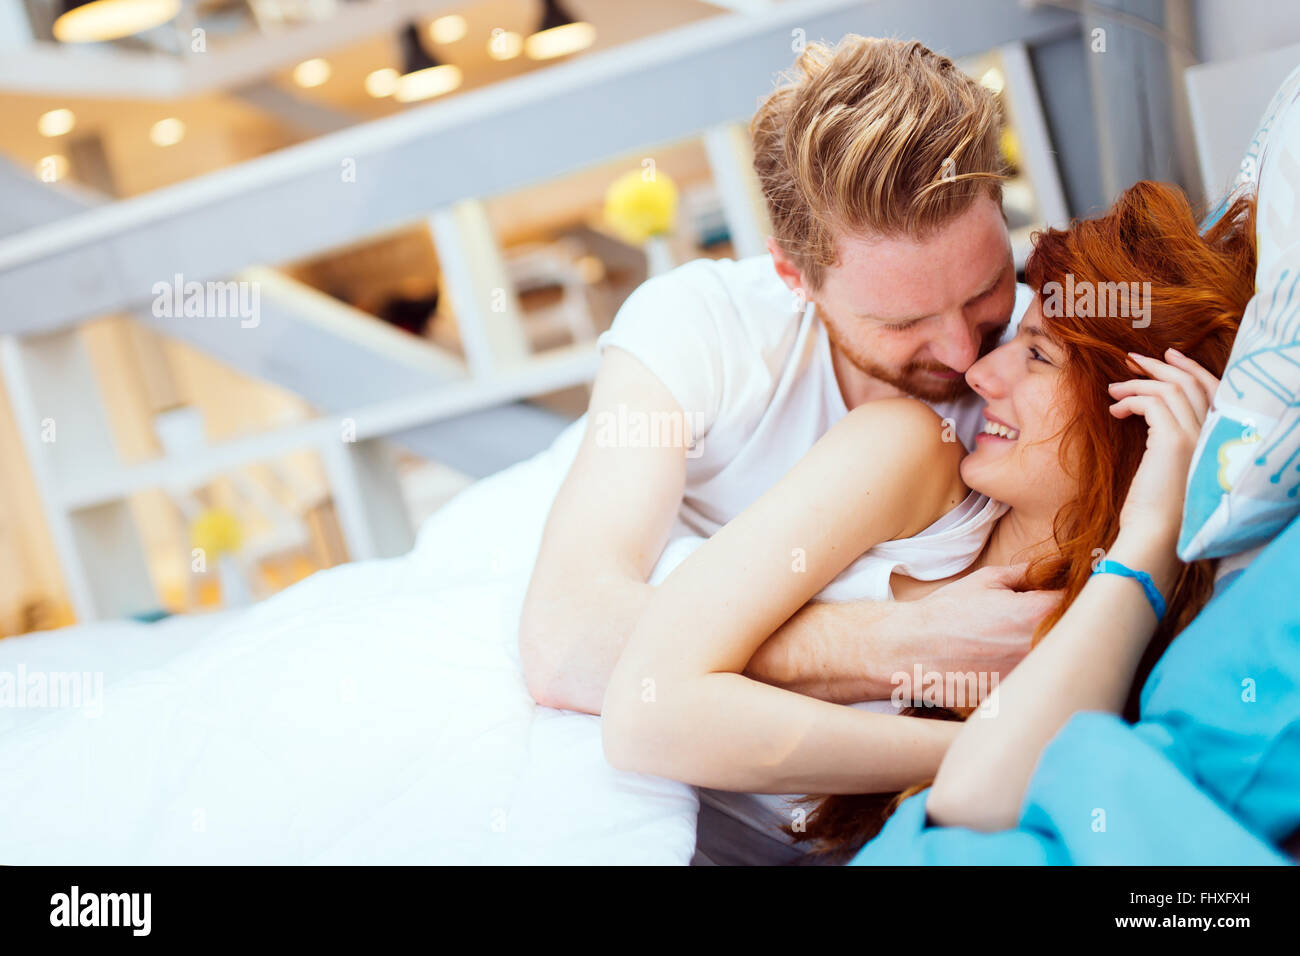 Romantic couple in love lying on bed and being passionate   Stock Photo. Romantic couple in love lying on bed and being passionate Stock